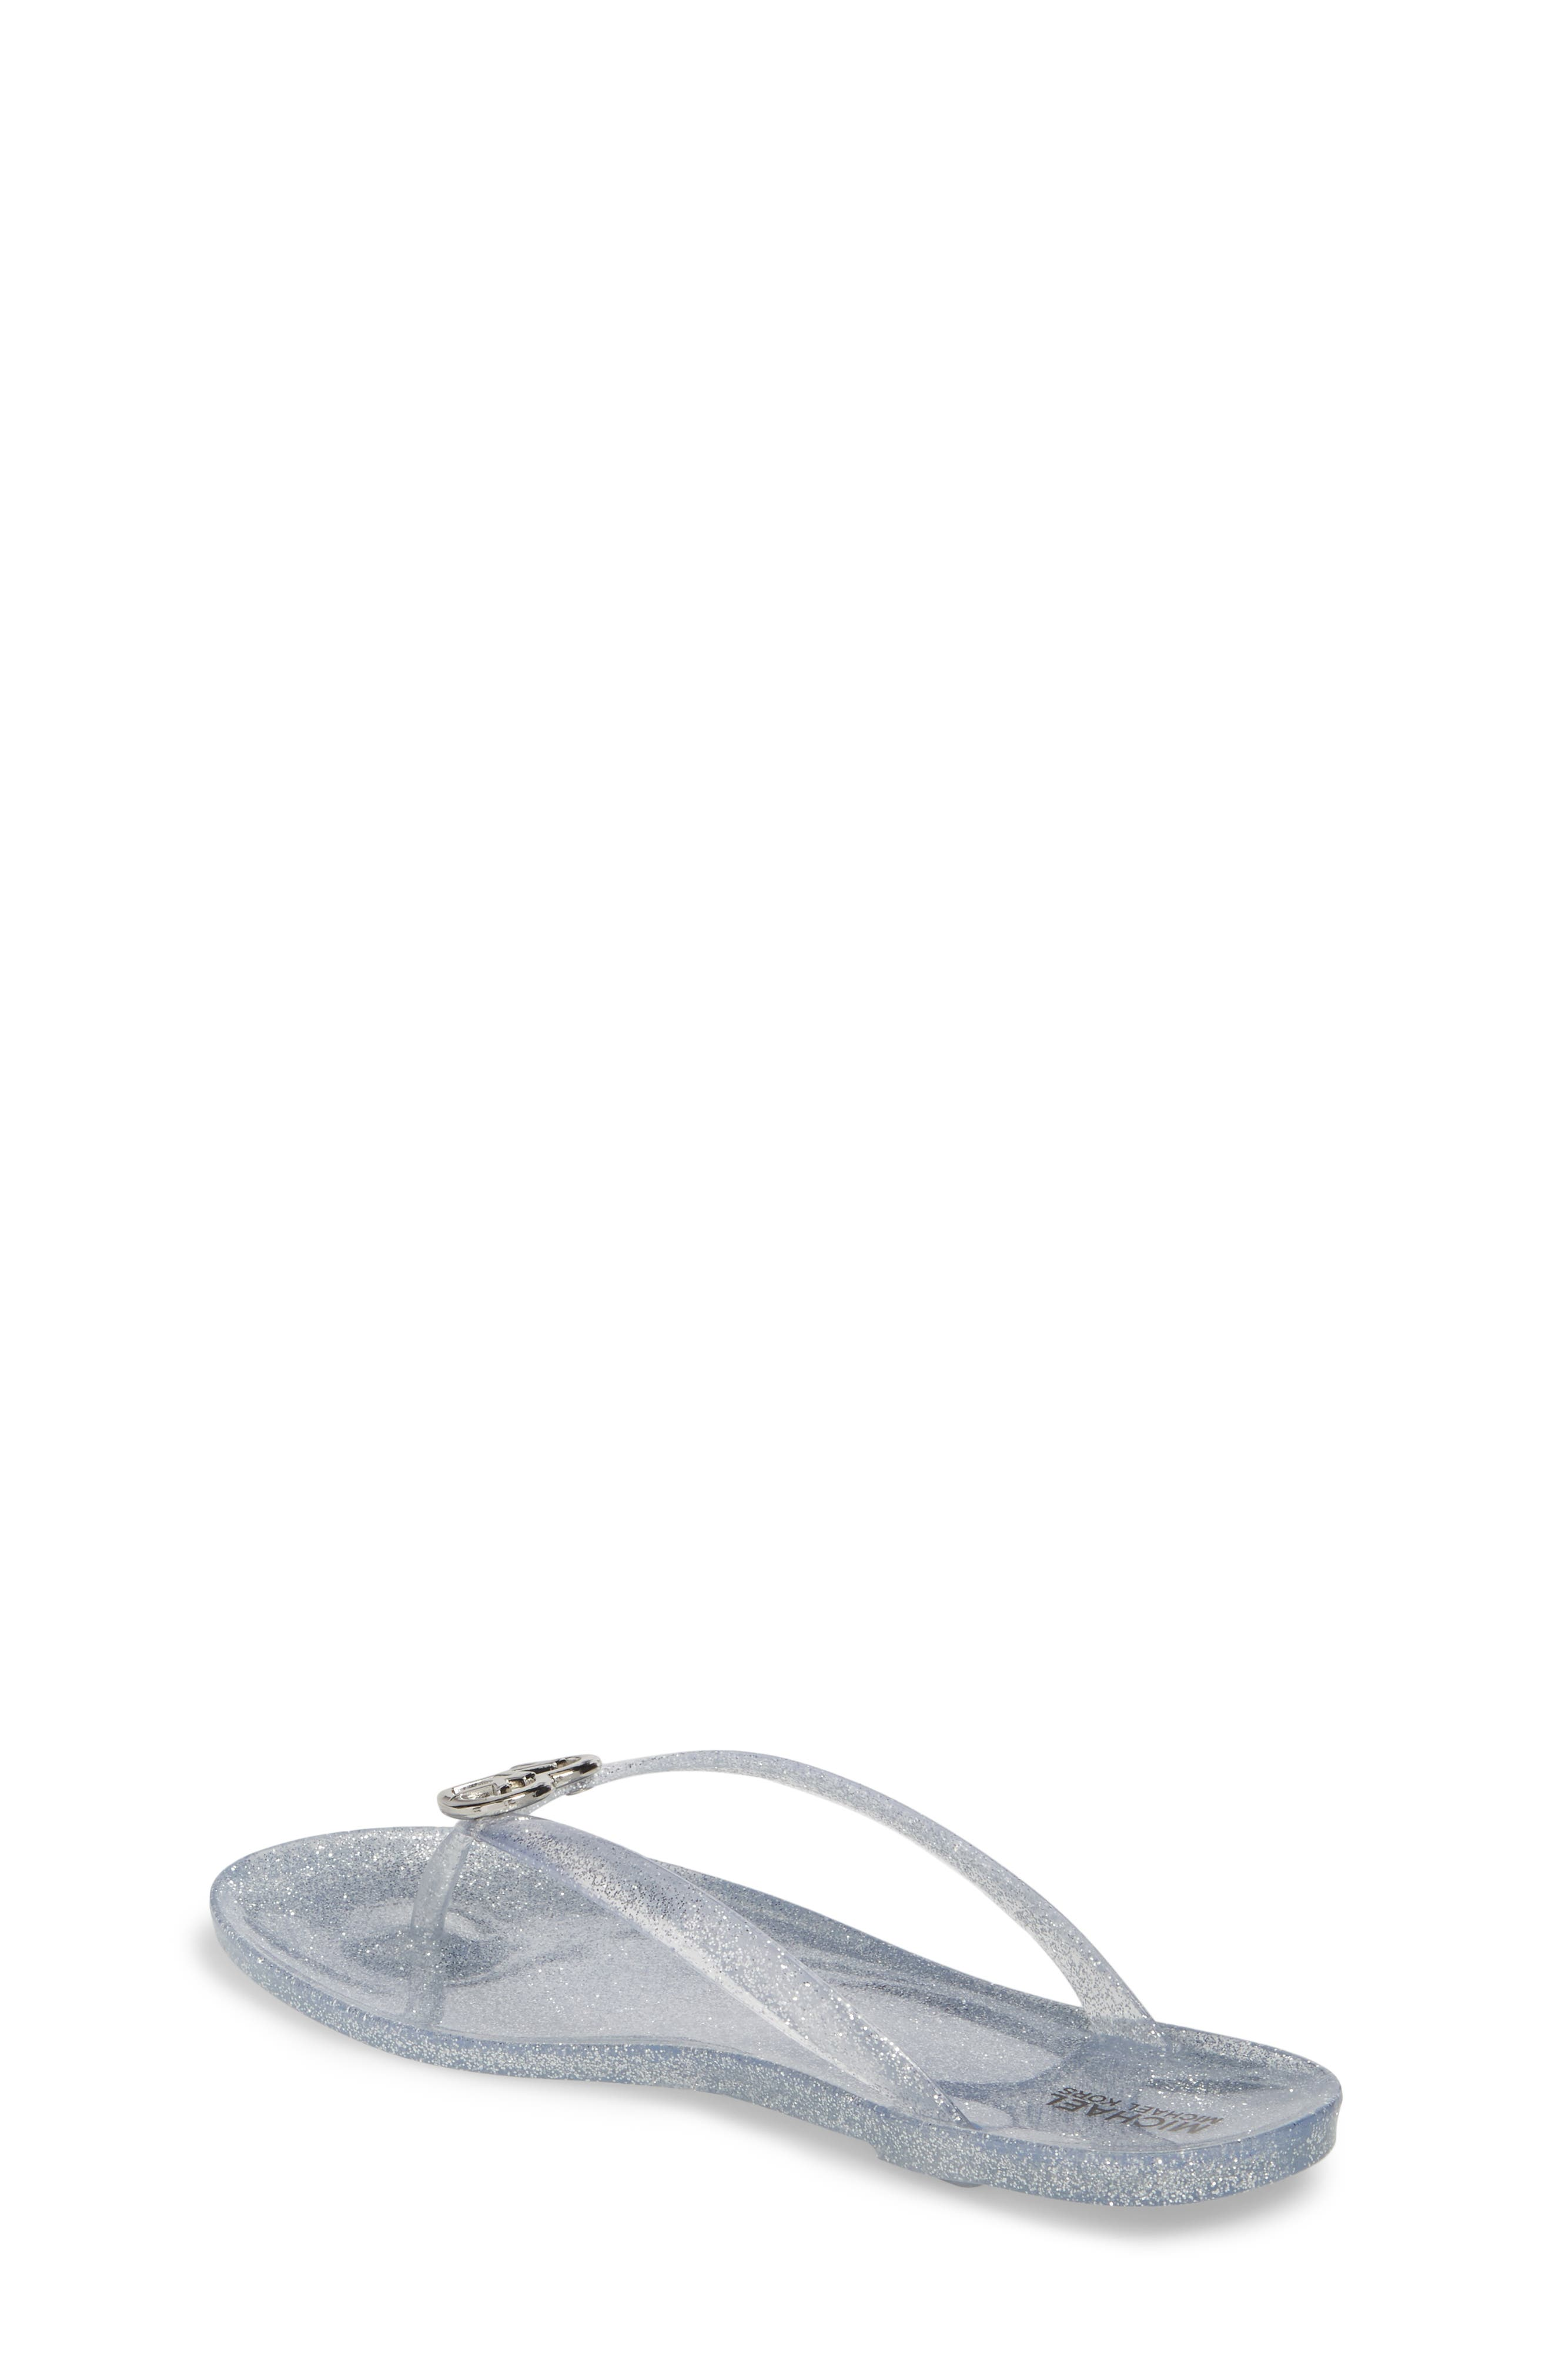 Trish Glare Glitter Flip Flop,                             Alternate thumbnail 2, color,                             Silver Glitter